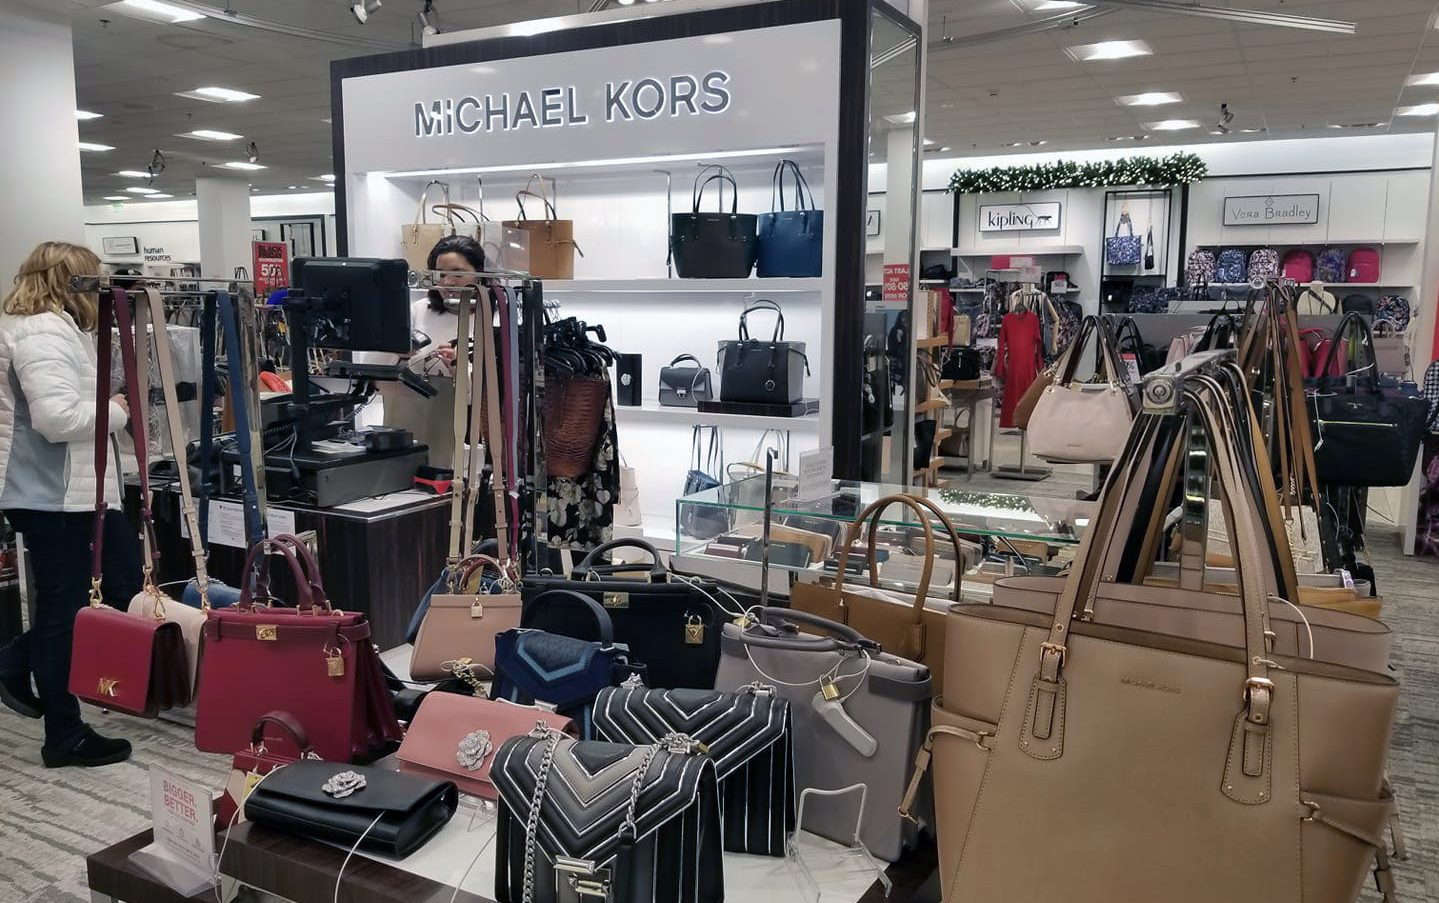 Michael Kors section in a retailer